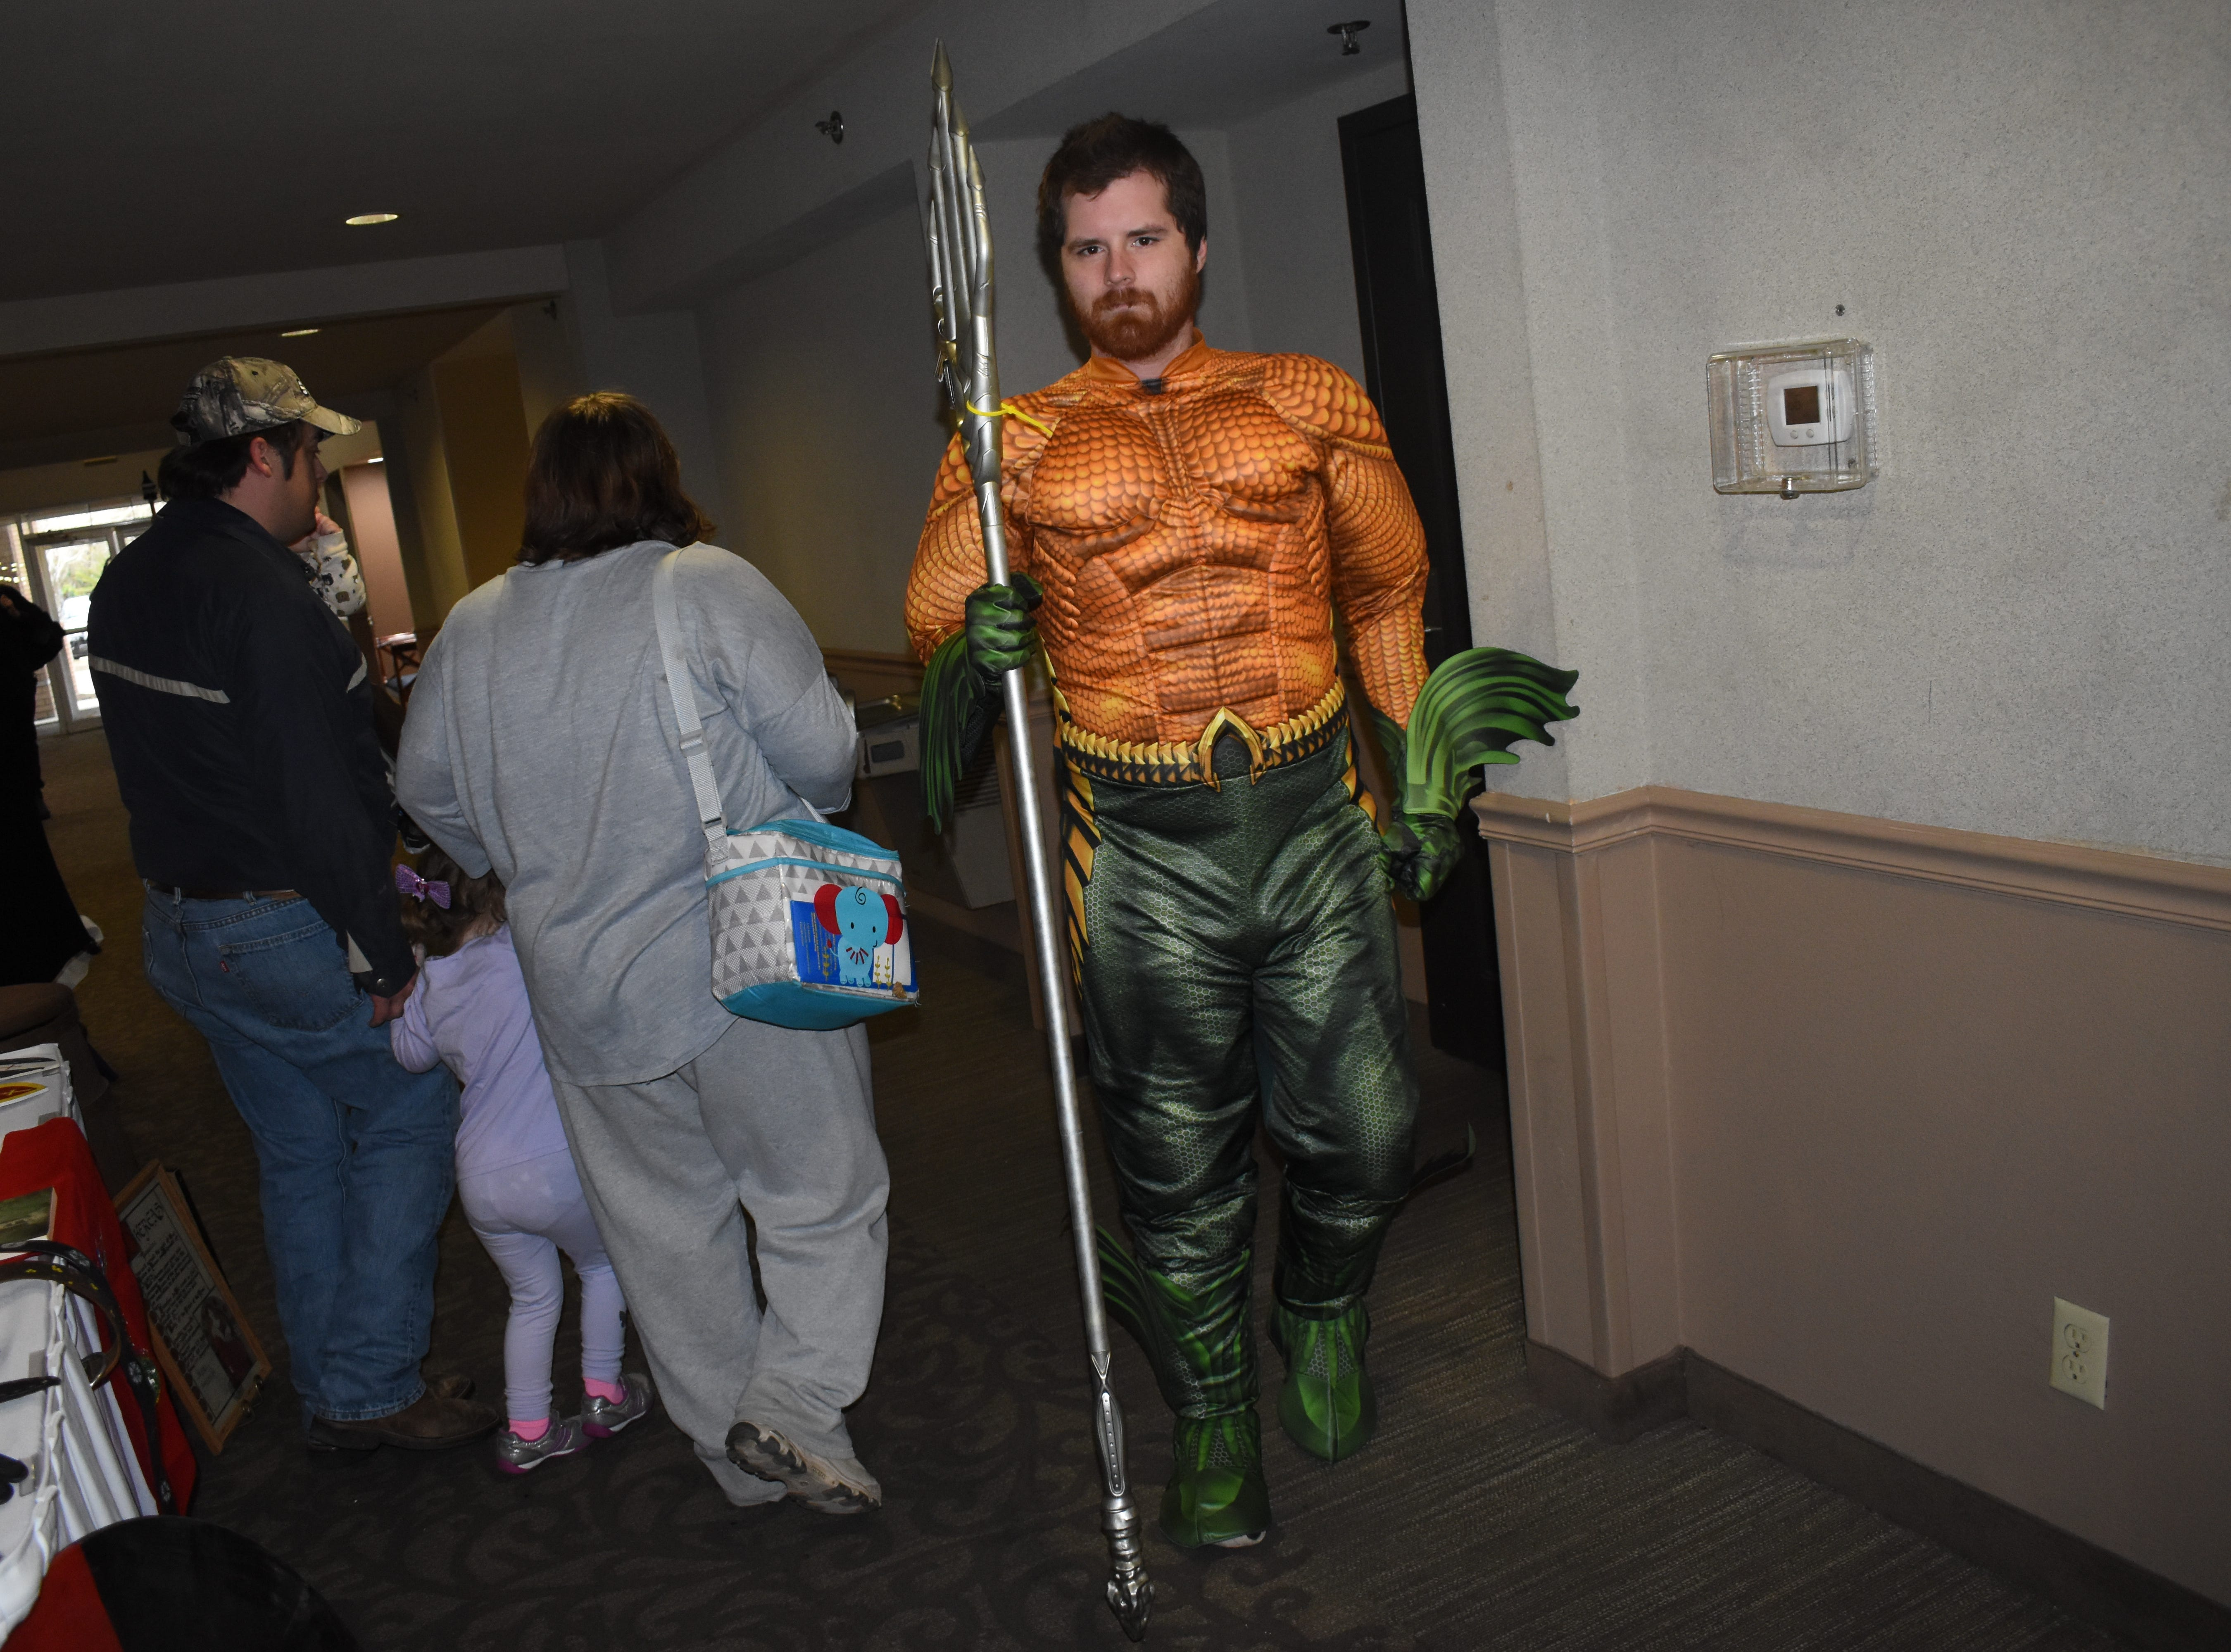 Dressed as th DC Comics' superhero Aquaman, Stefan Stolmeier walks around Creative Con 2019 Saturday, Feb. 9, 2019 at the Best Western Inn & Suites on North MacArthur Drive. Creative Con is sponsored by the Rapides Parish Library and caters to all creative interests such as books, cosplay, gaming, art, steampunk, 3D printing and more. Among the panel discussions were a talk about acting and the acting business by Alexandria actor and stylist Dan Forest, and  discussions about magic by magician David Lebeouf, Doctor Who by Jack Sawtelle and writing by Christee Atwood. Other events included a costume contest, trivia games and play fighting by the Society for Creative Anarchronism.